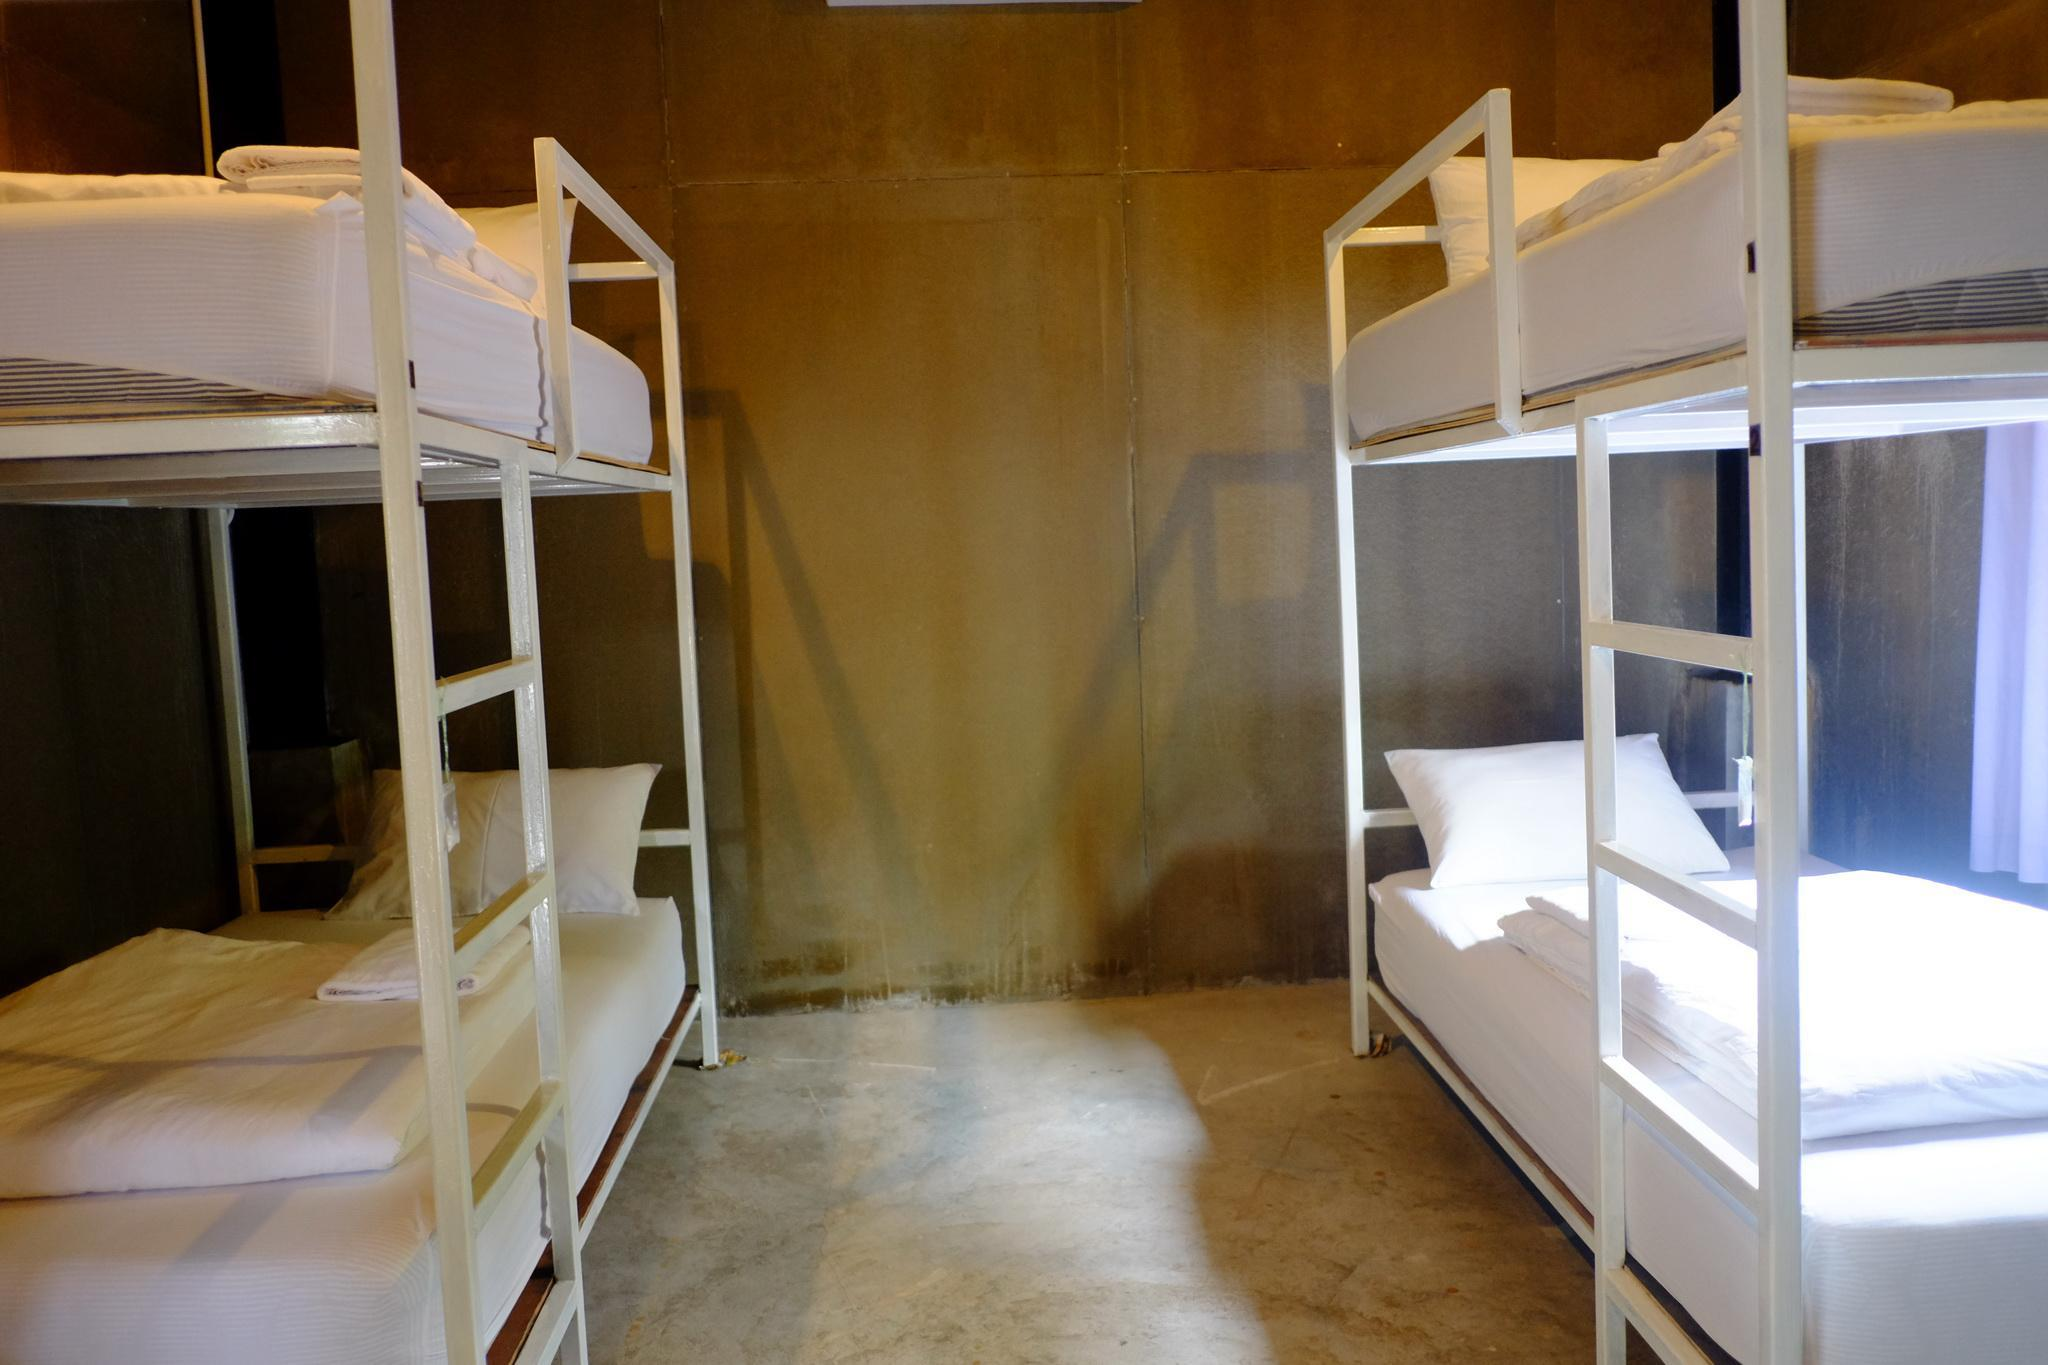 4 Bed in Dormitory